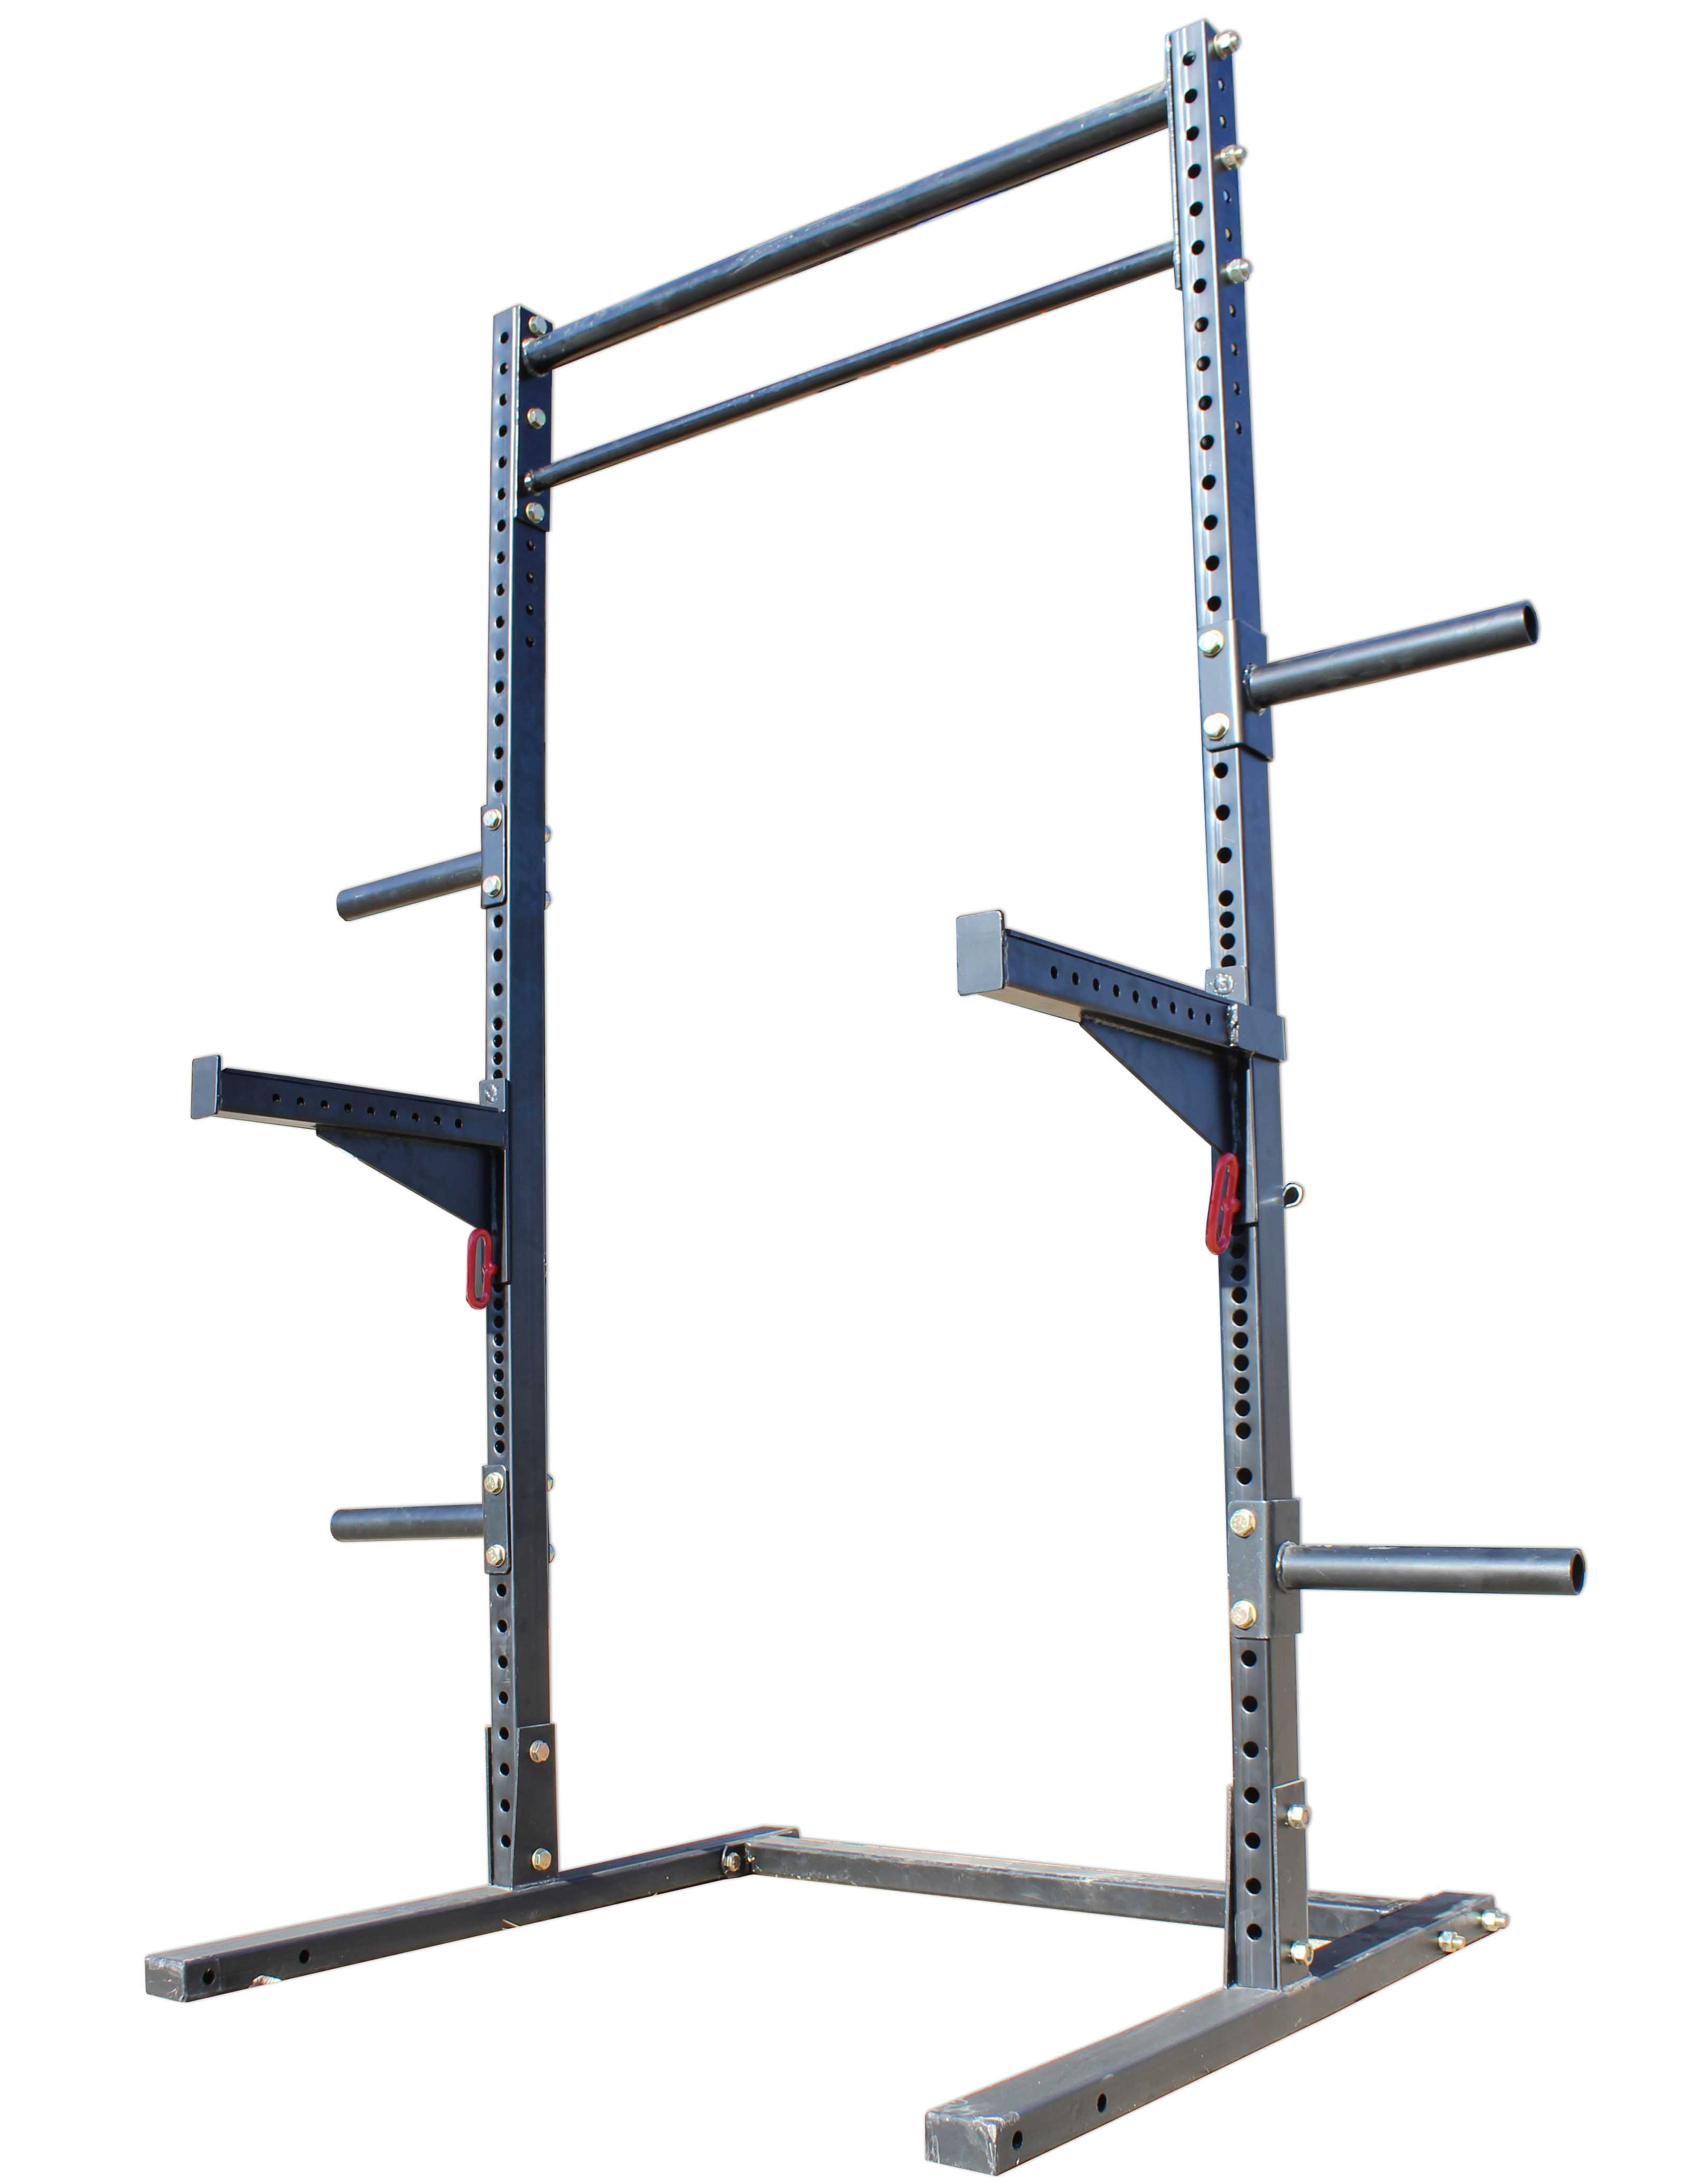 titan t 3 squat rack w safely spotter arms weight lift stand strength pull up